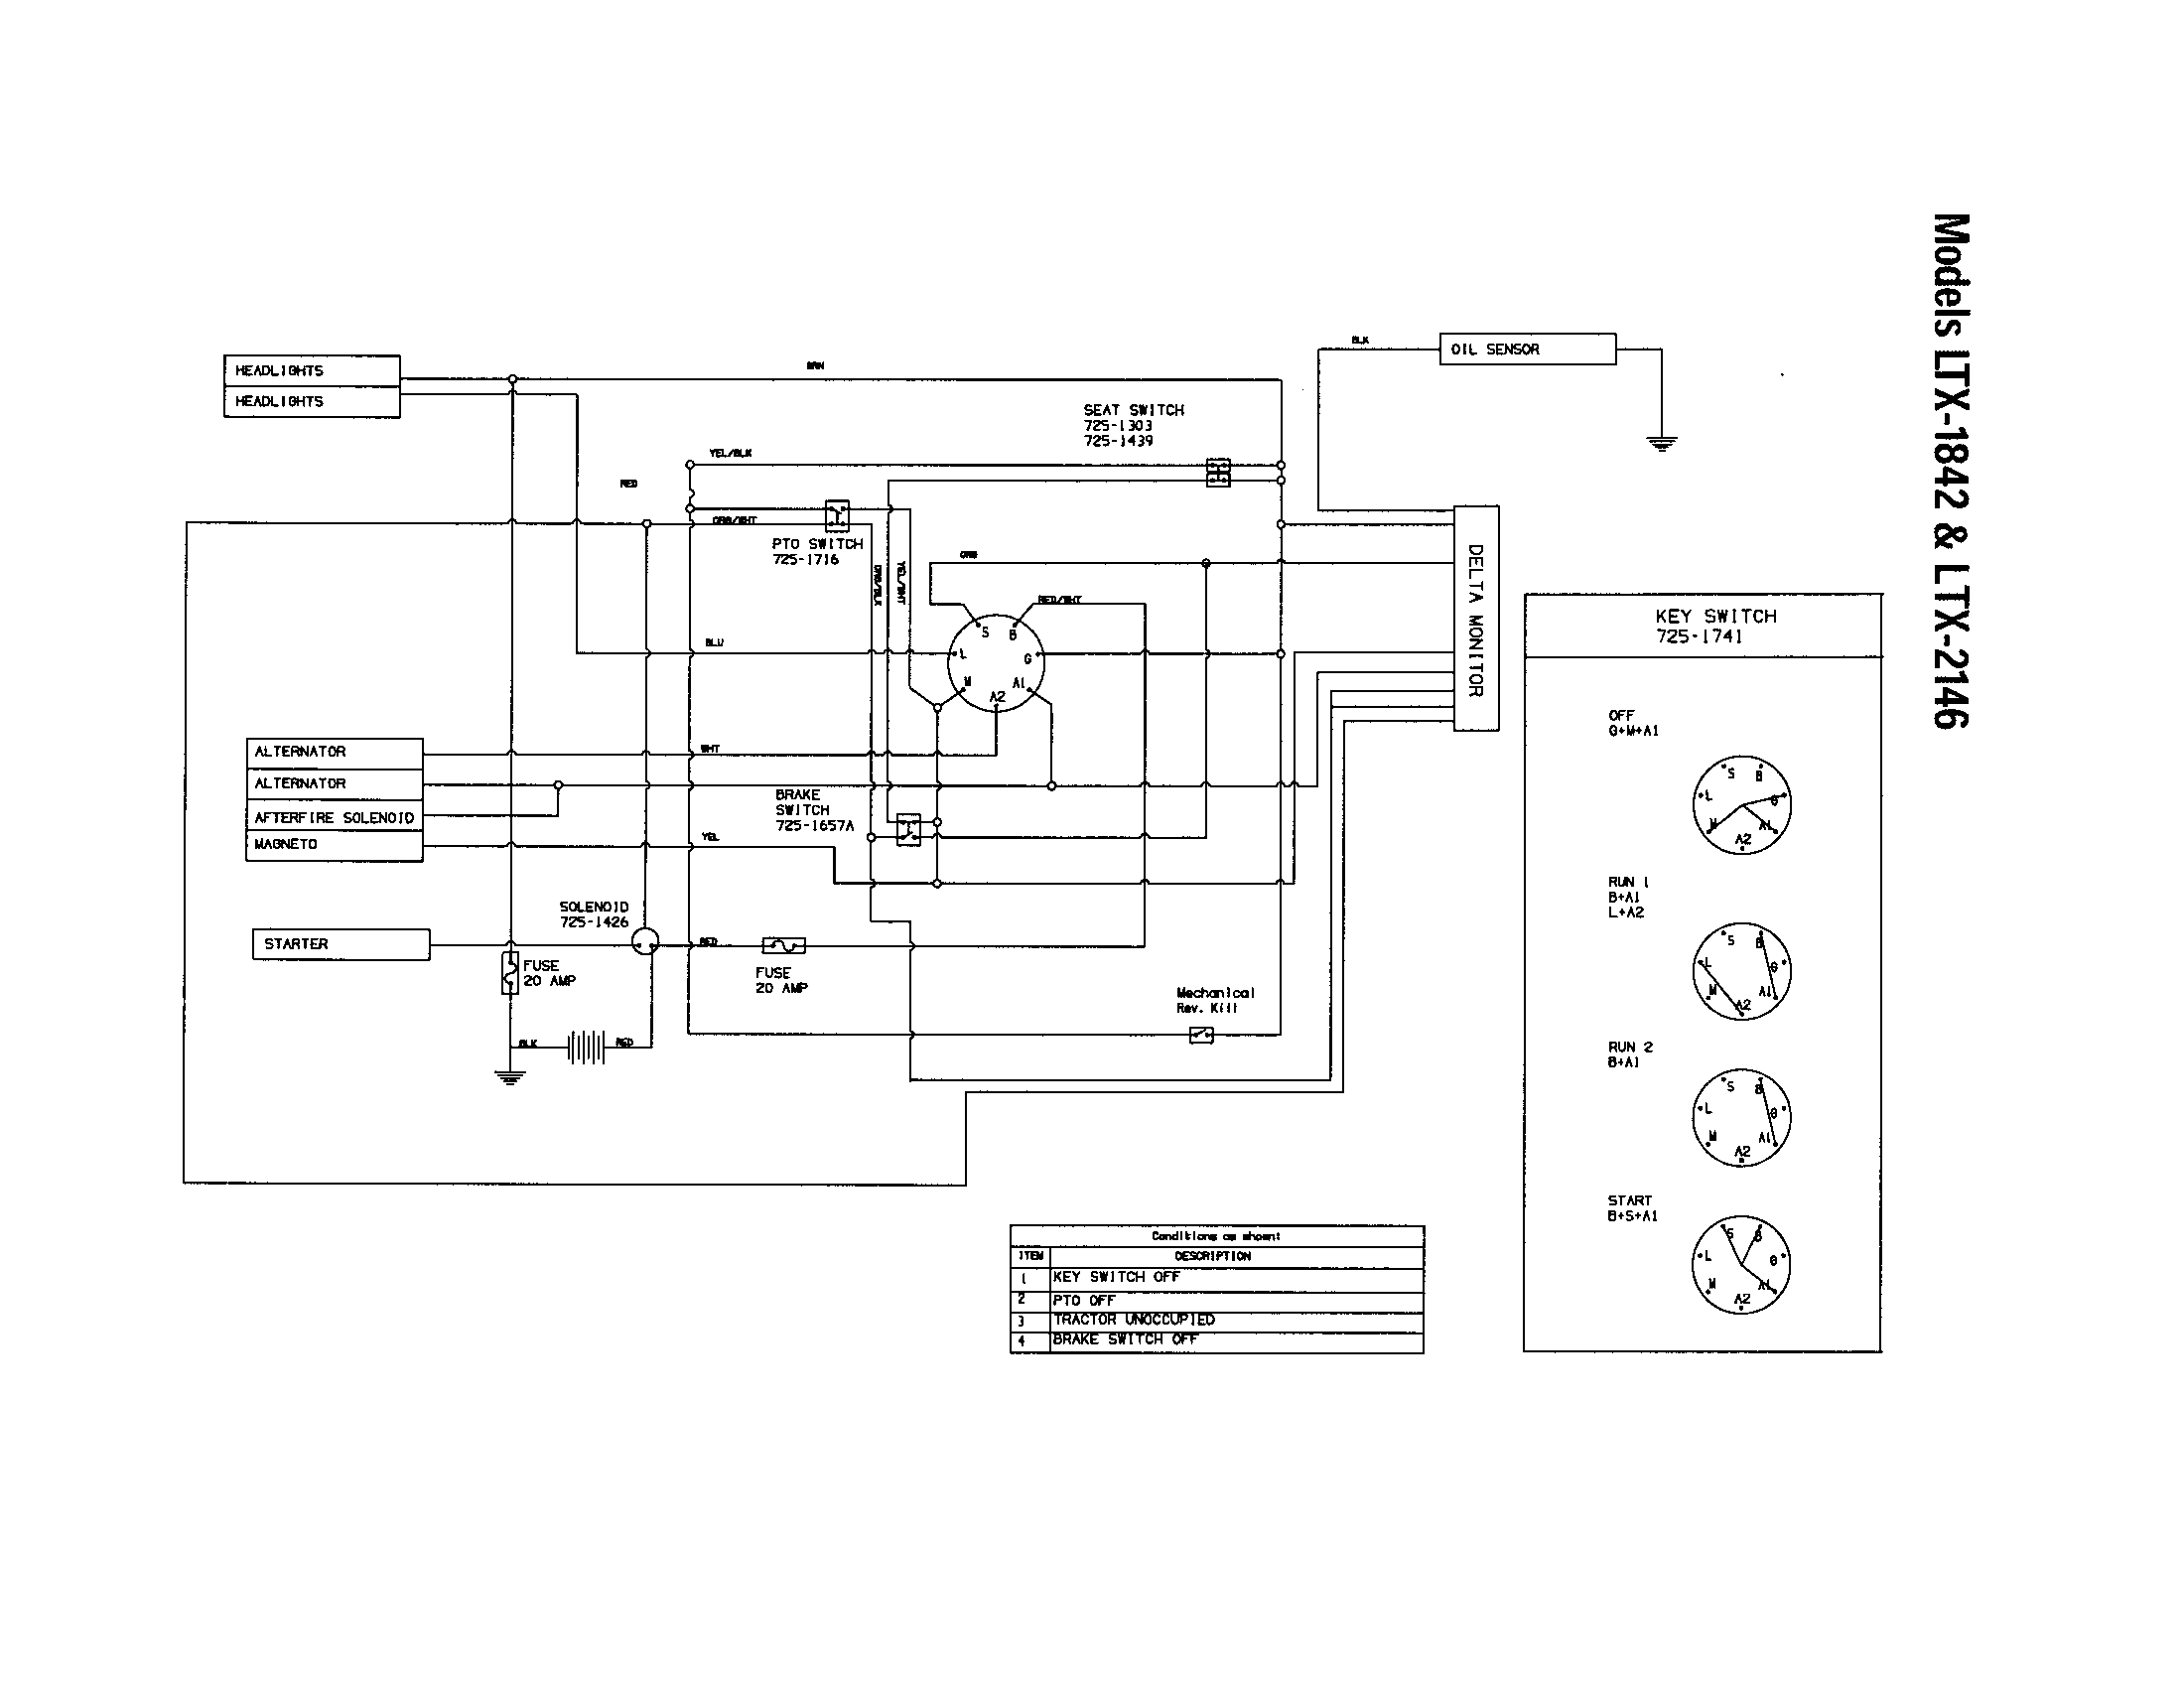 5f6fdf170ac50150de0653e8e97fb173 garden spa wiring diagram wiring diagrams schematics